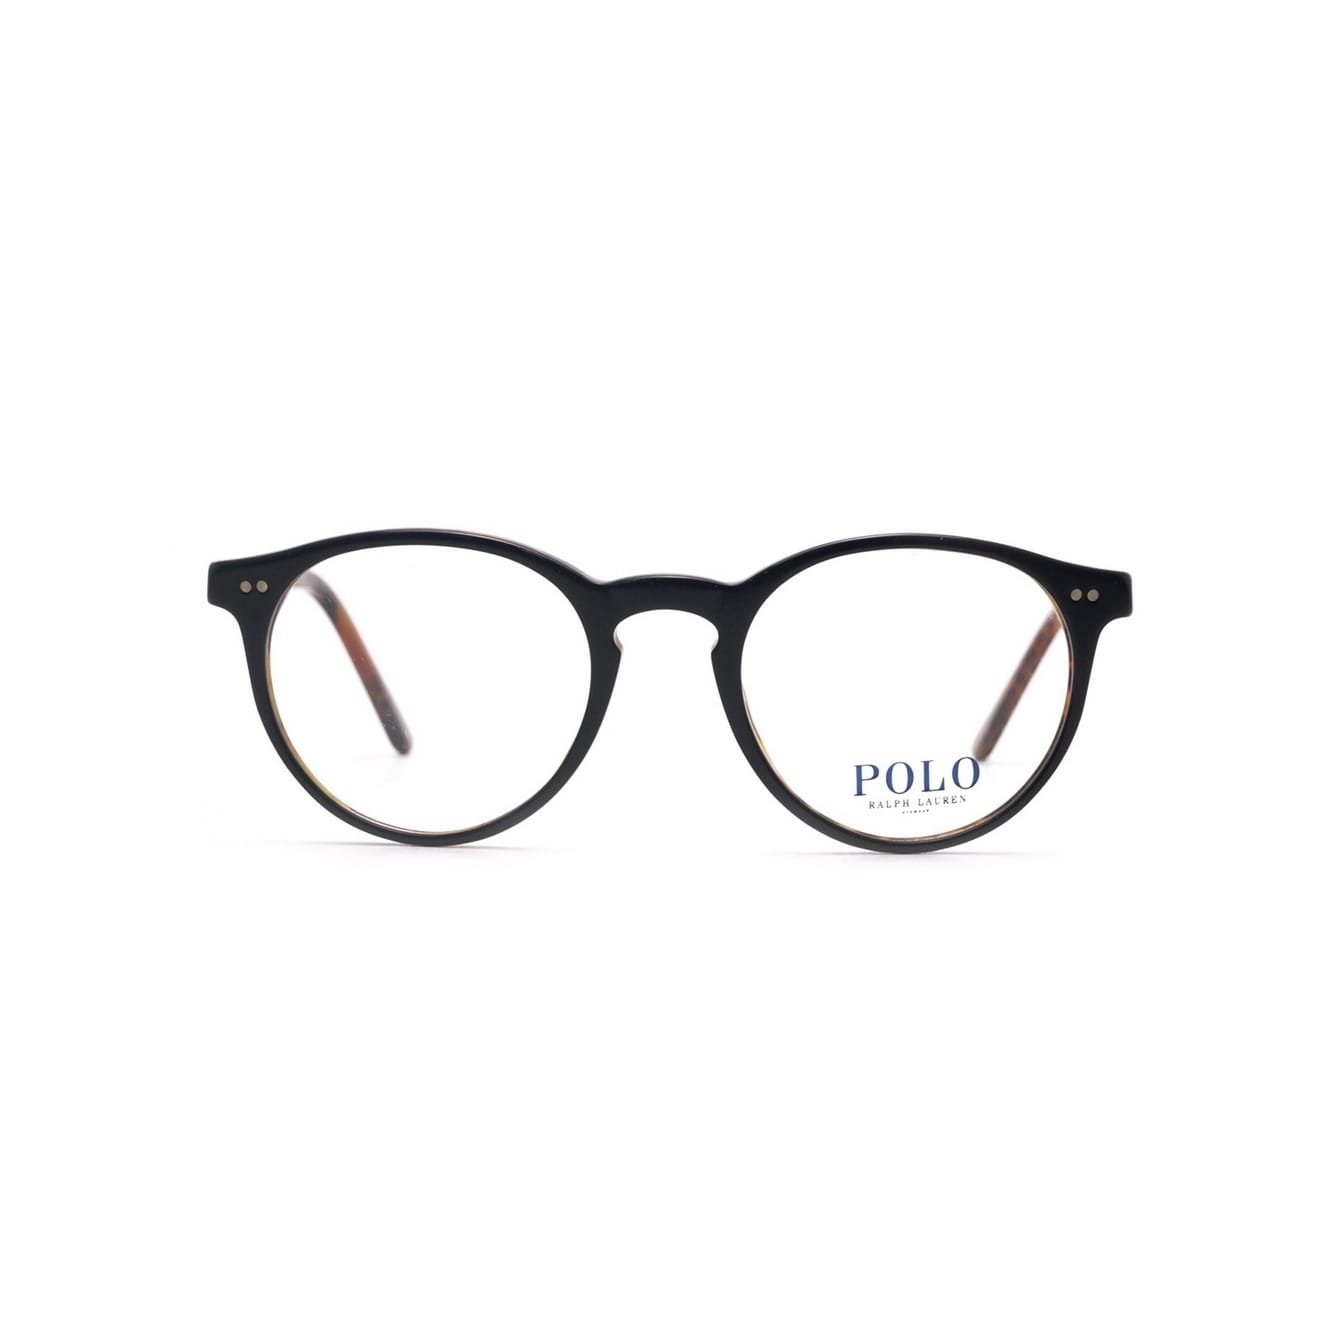 35edc85cfad Shop Polo by Ralph by Ralph Lauren Lauren Men s PH2083 5260 48 Round  Plastic Black Clear Eyeglasses - Free Shipping Today - Overstock - 14786177